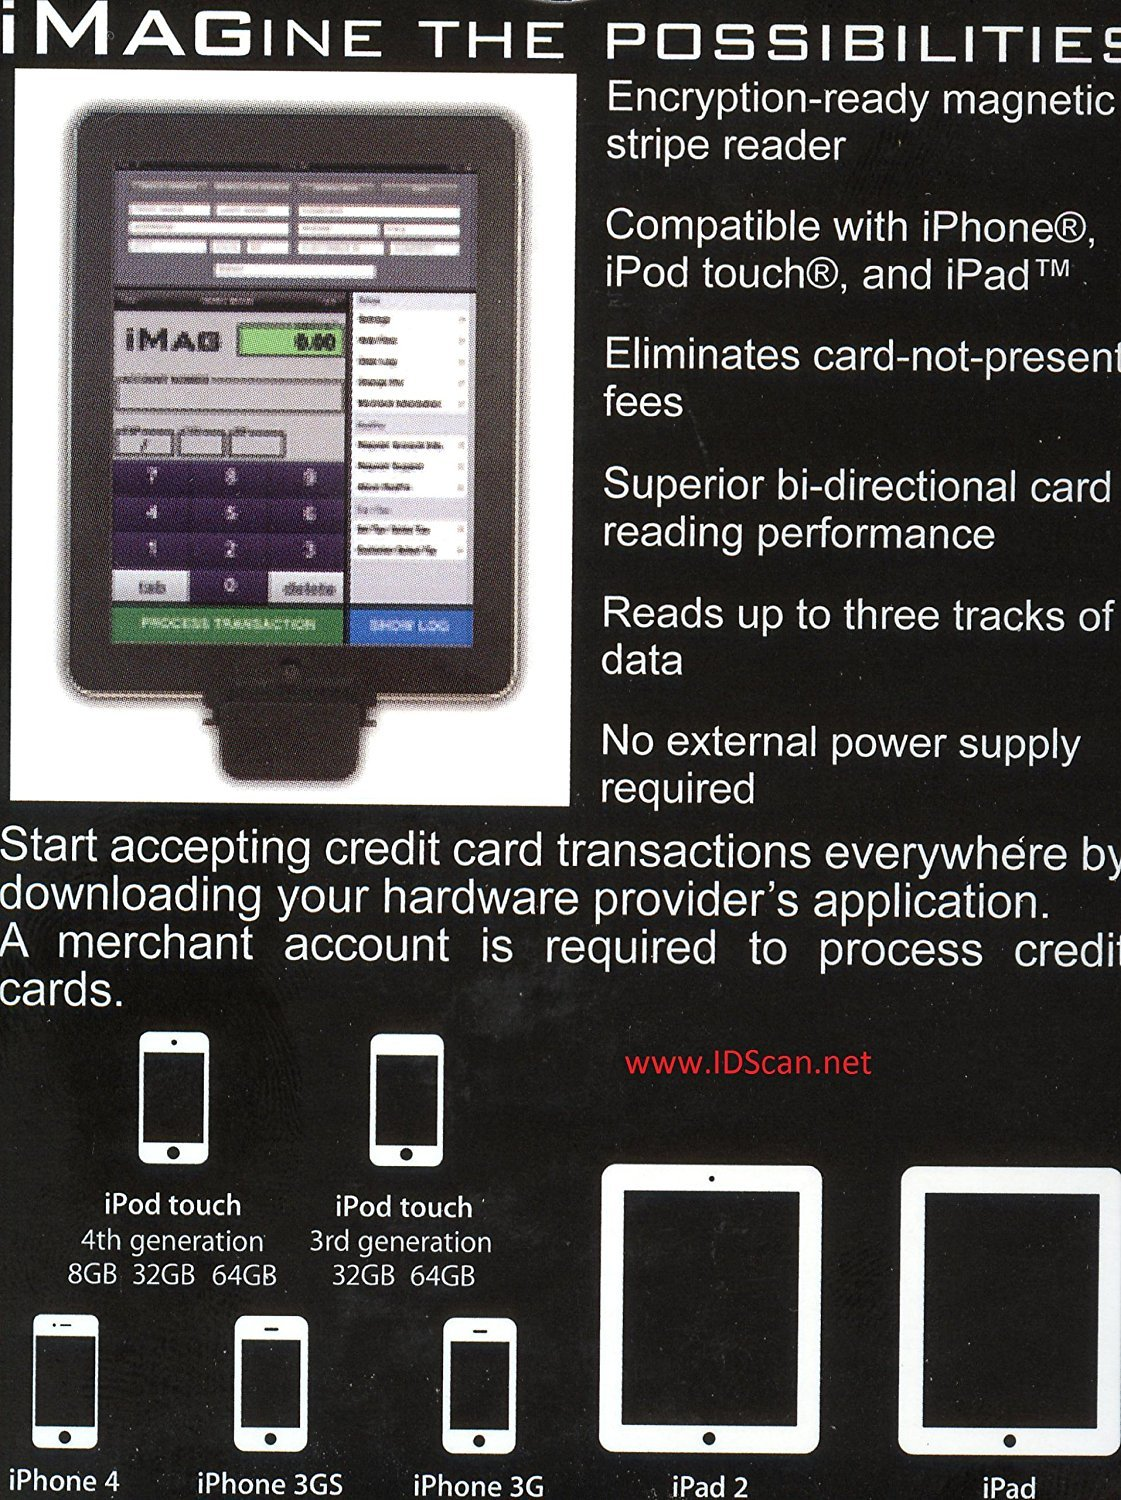 iMag Pro 2 Connector for iOS Iphone, Ipad, Ipod Touch Magstripe Reader - IDMR-AL30133 by IDTech